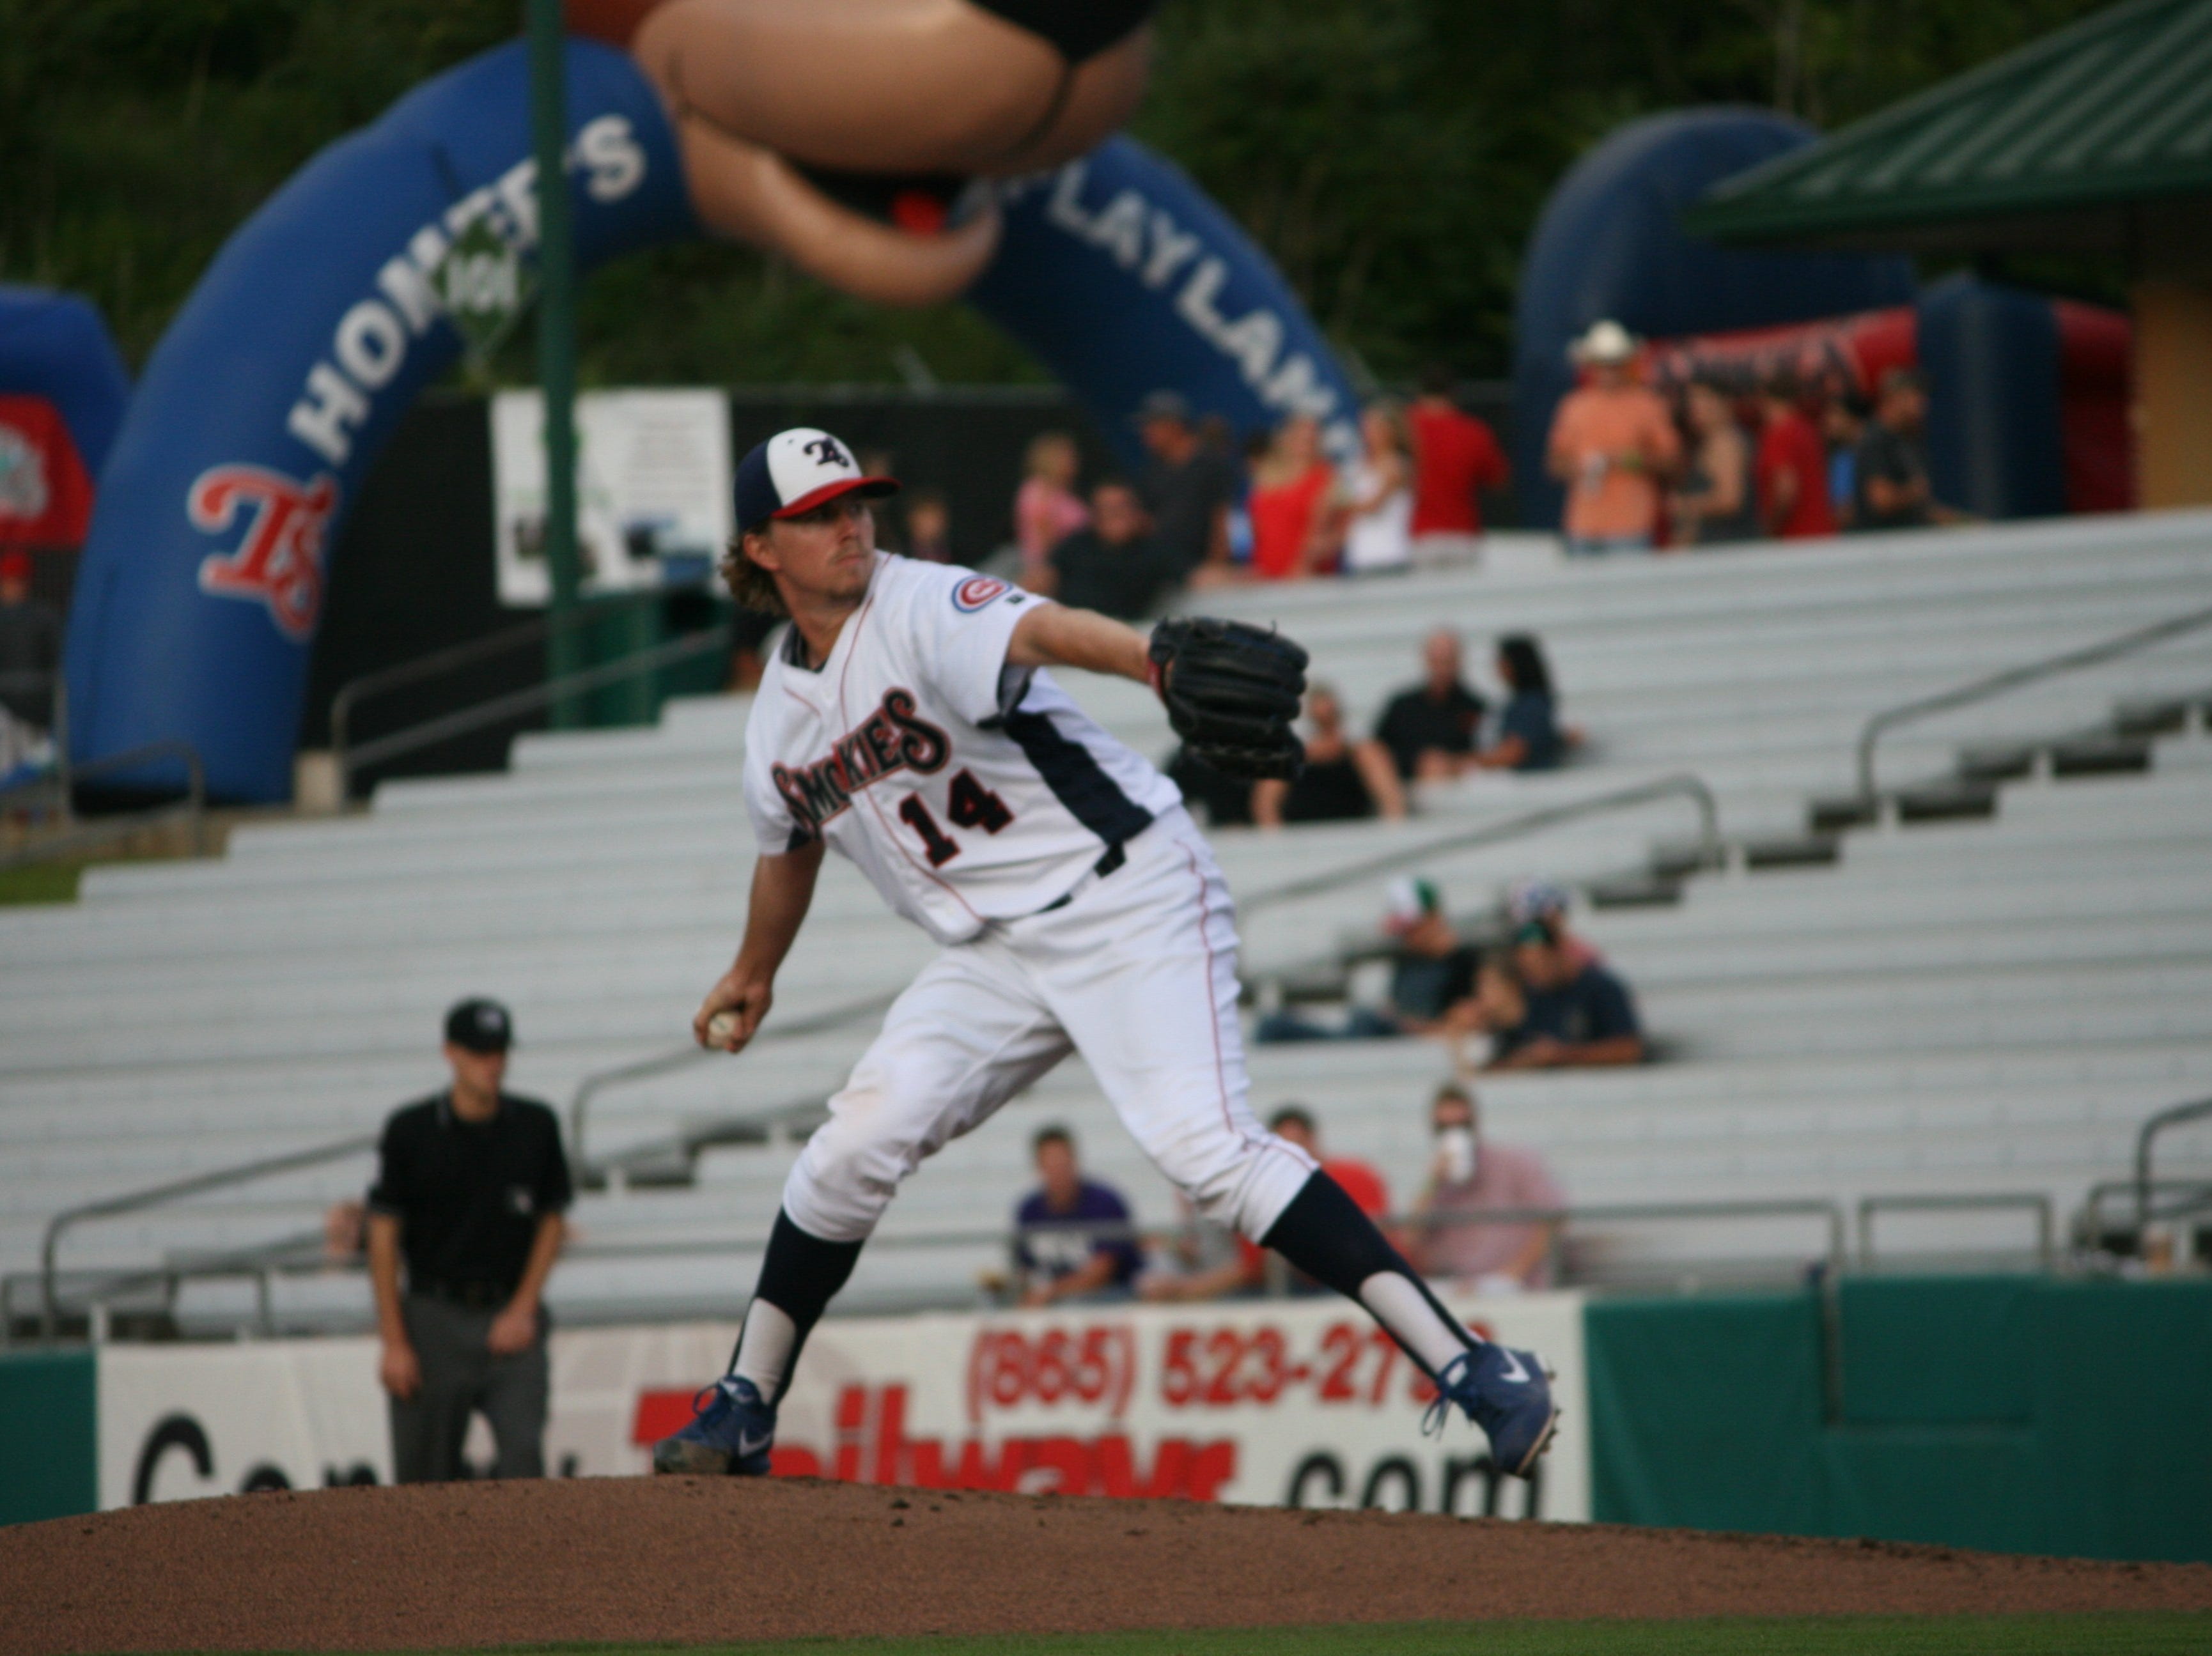 Pierce Johnson delivers a pitch during his six shutout innings in the Smokies' victory on Thursday night.